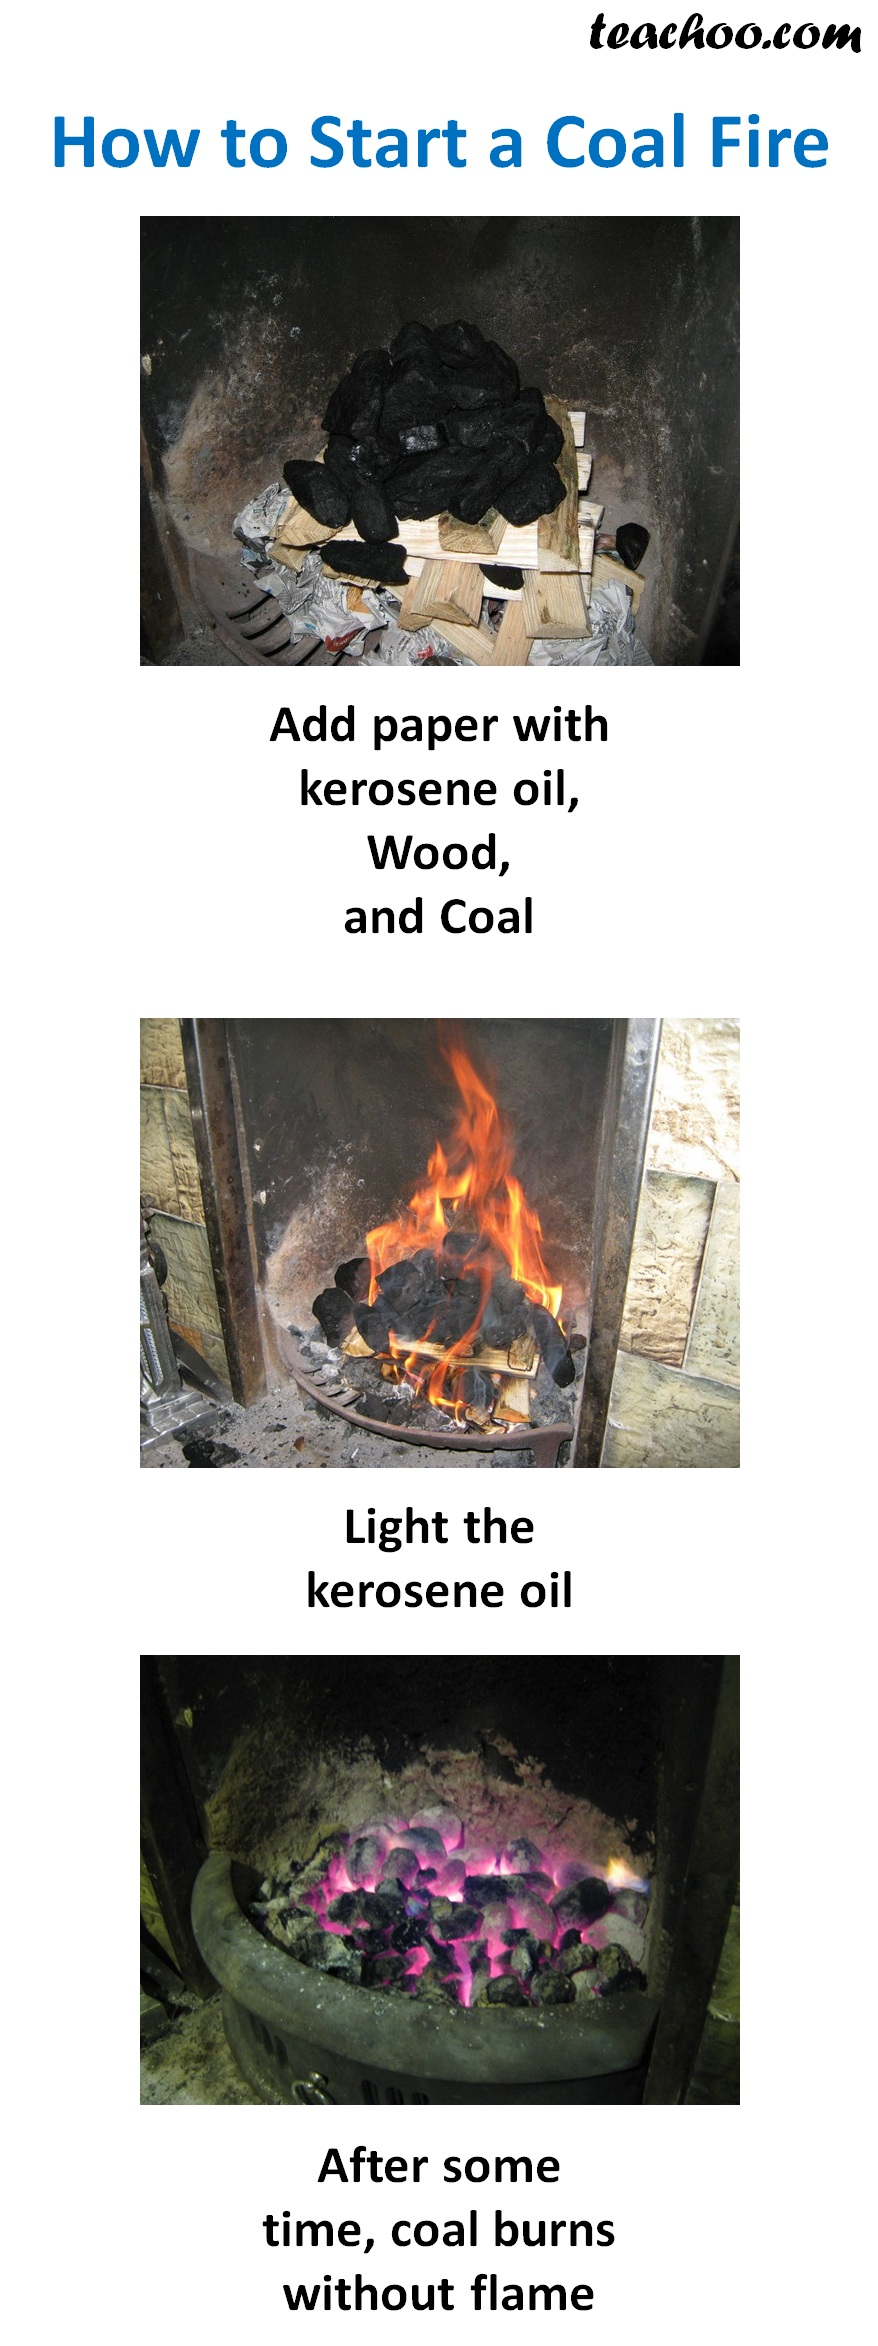 How To Start a Coal Fire - Teachoo.jpg